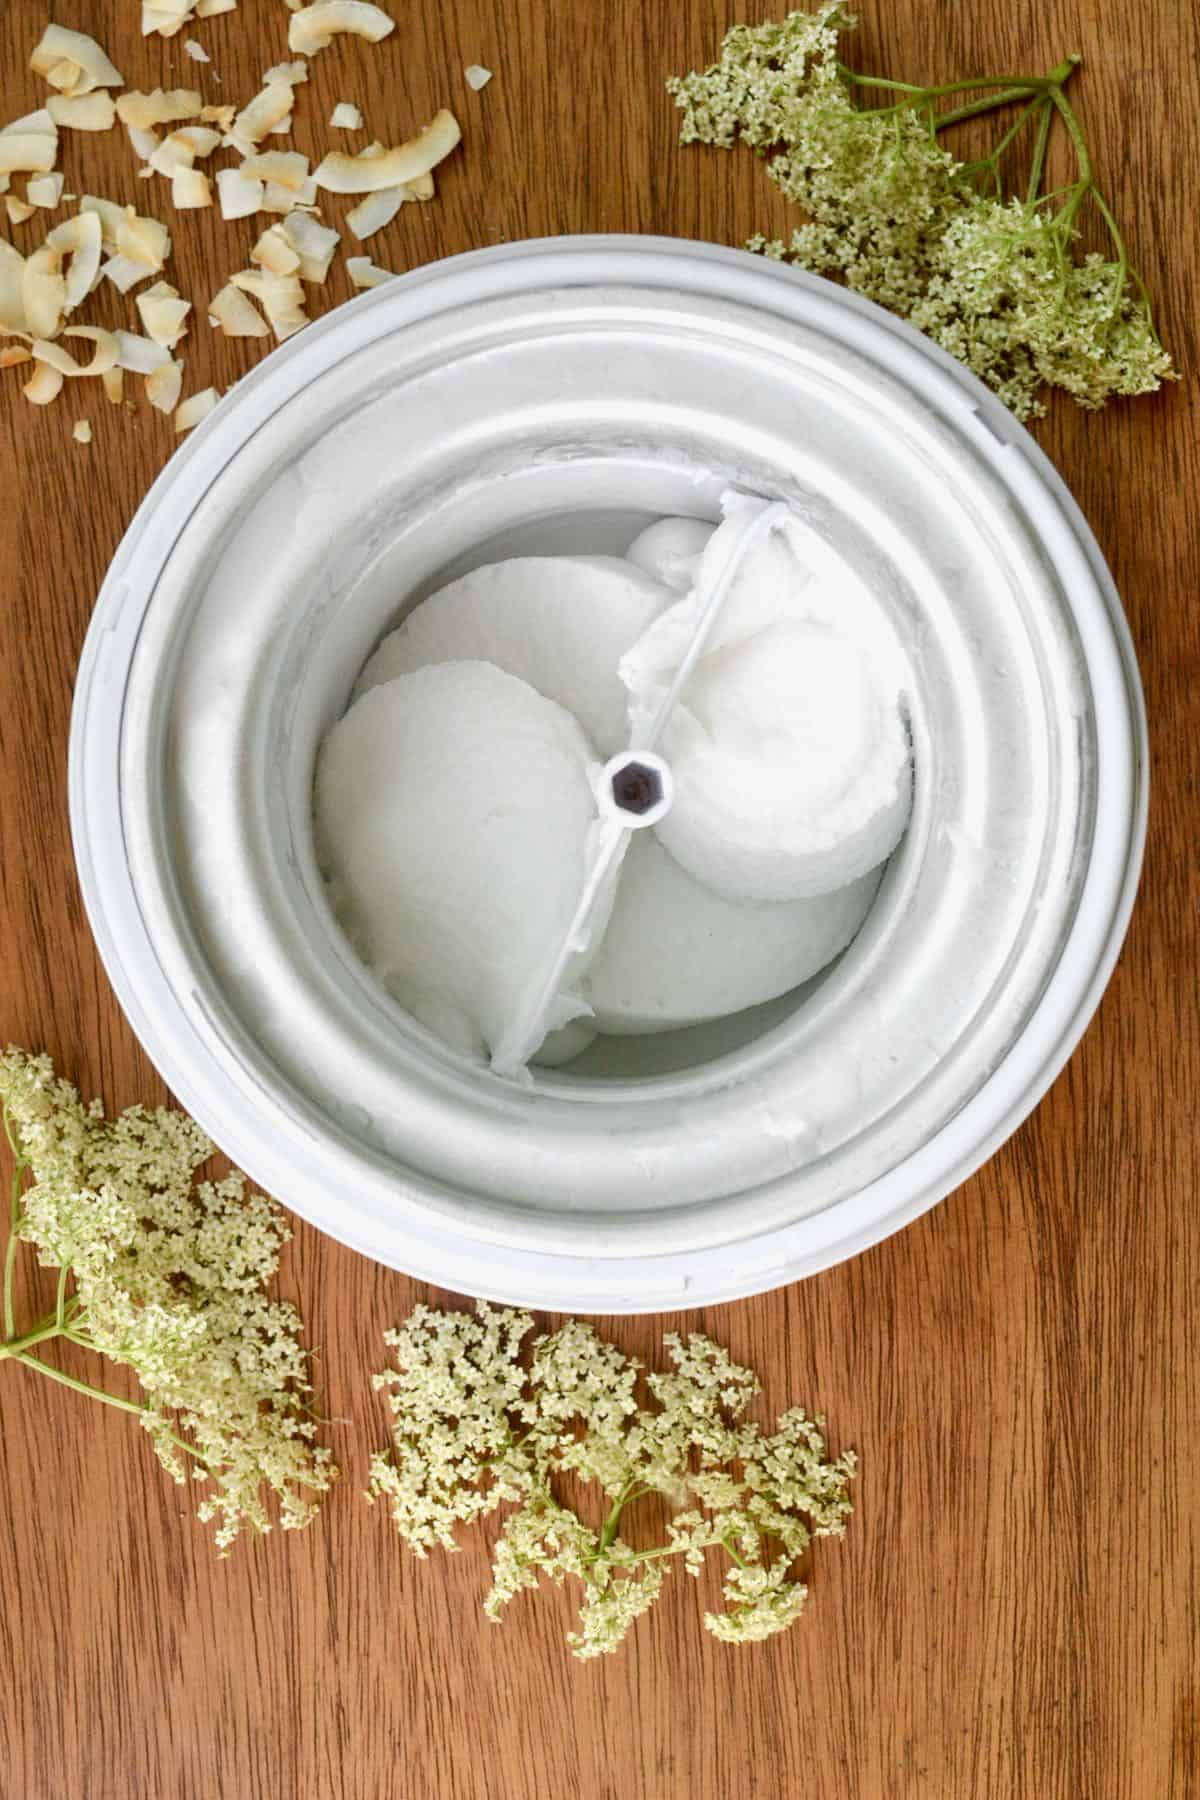 A top down view of the ice cream maker shows the freshly churned white ice cream.